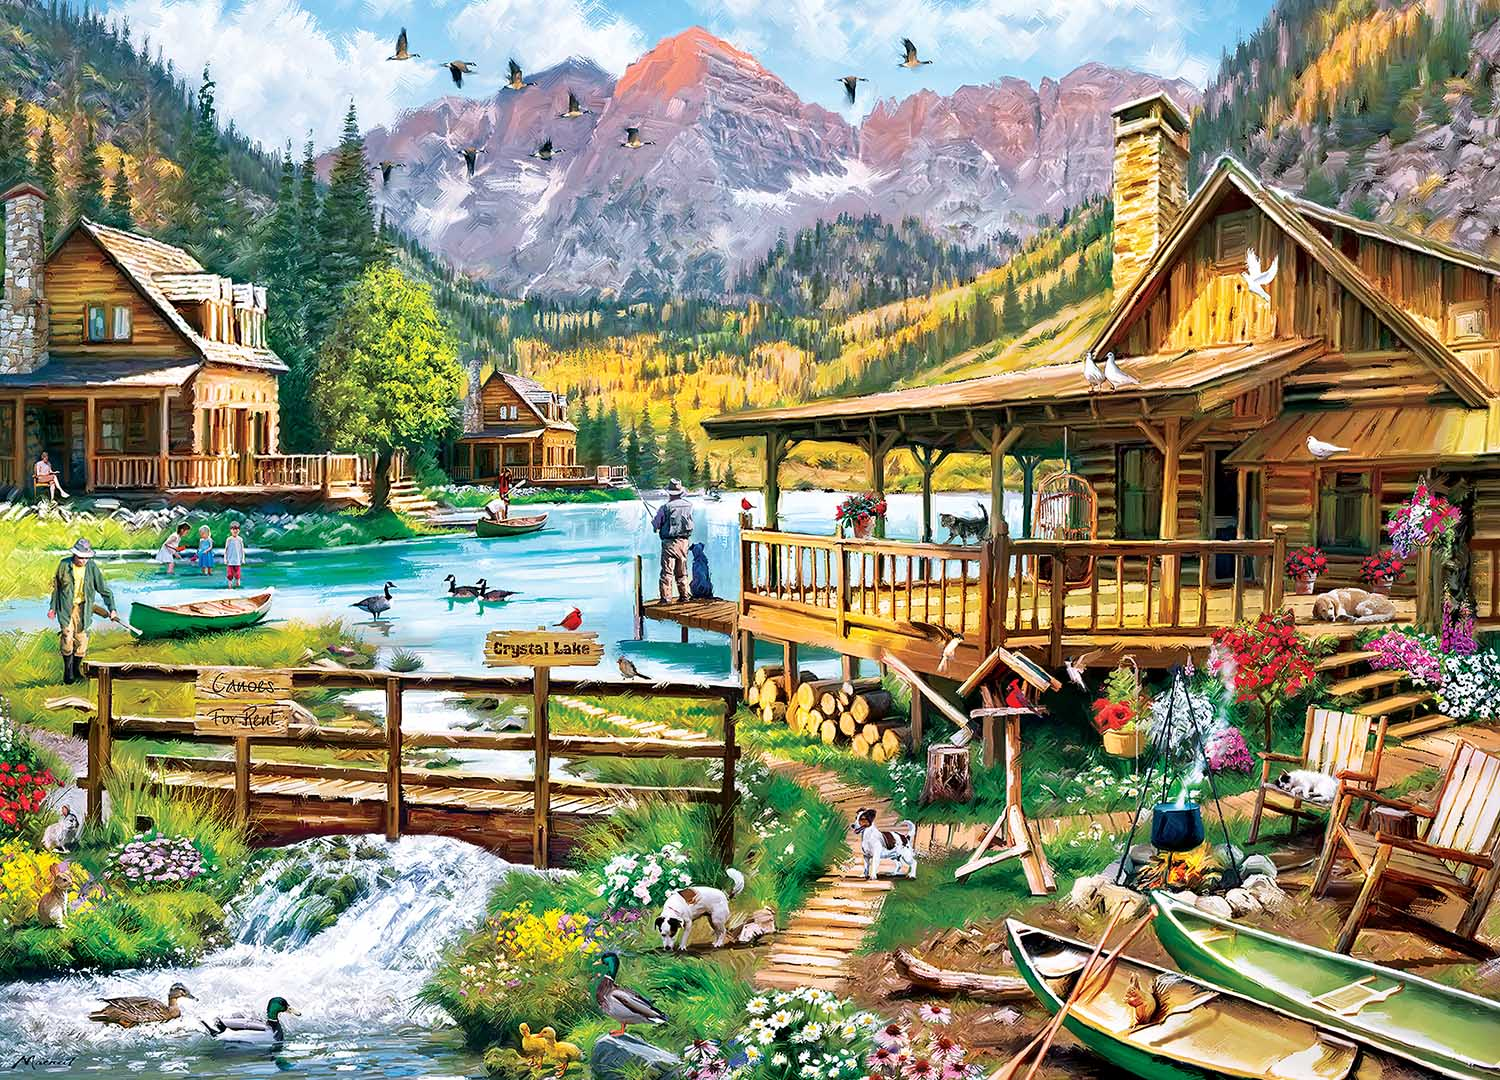 Canoes For Rent Boats Jigsaw Puzzle